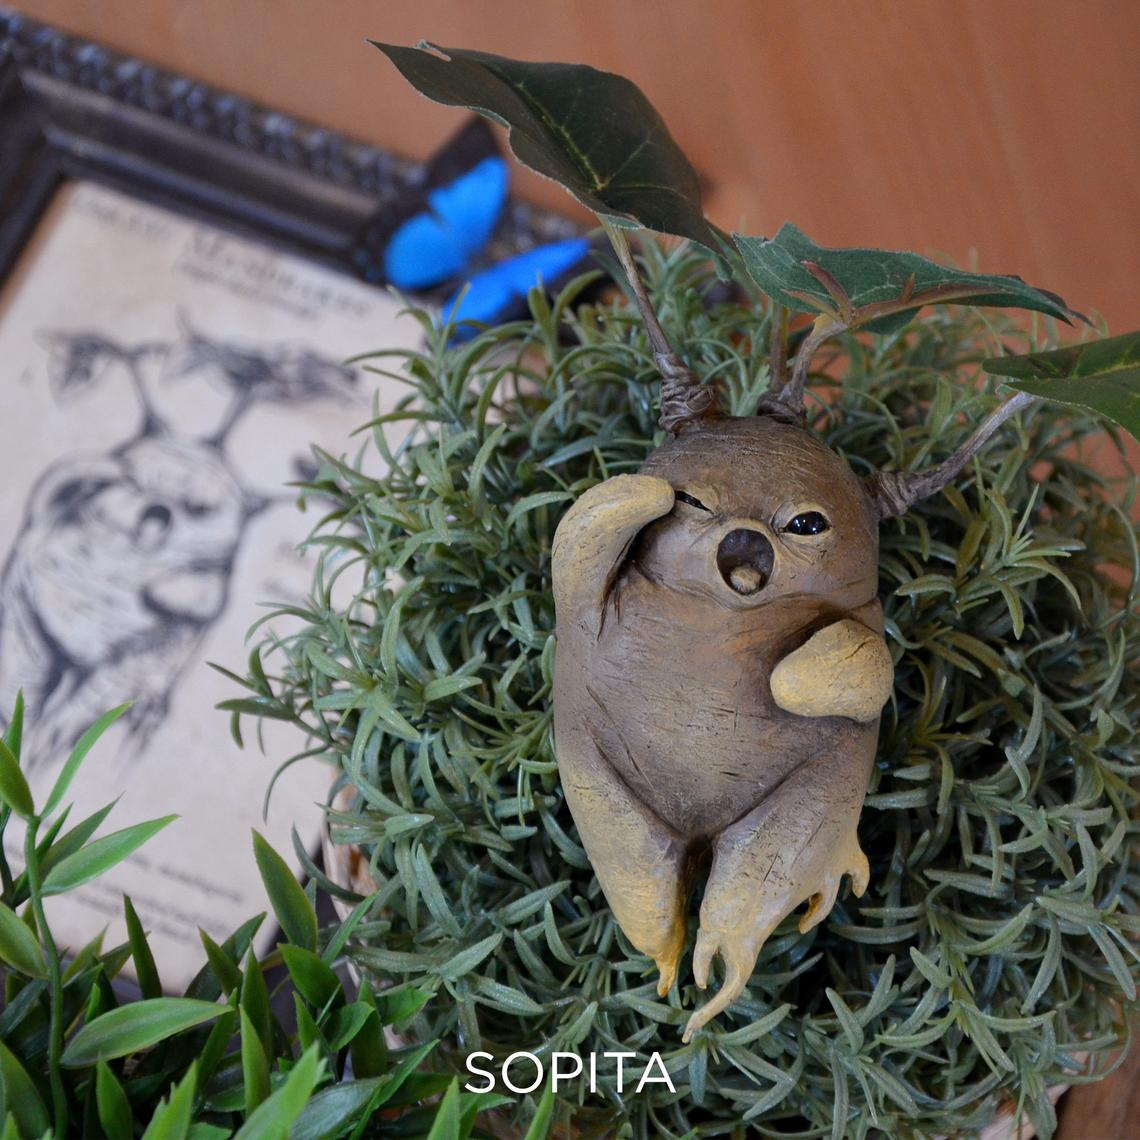 Handmade Mandrake from Harry Potter